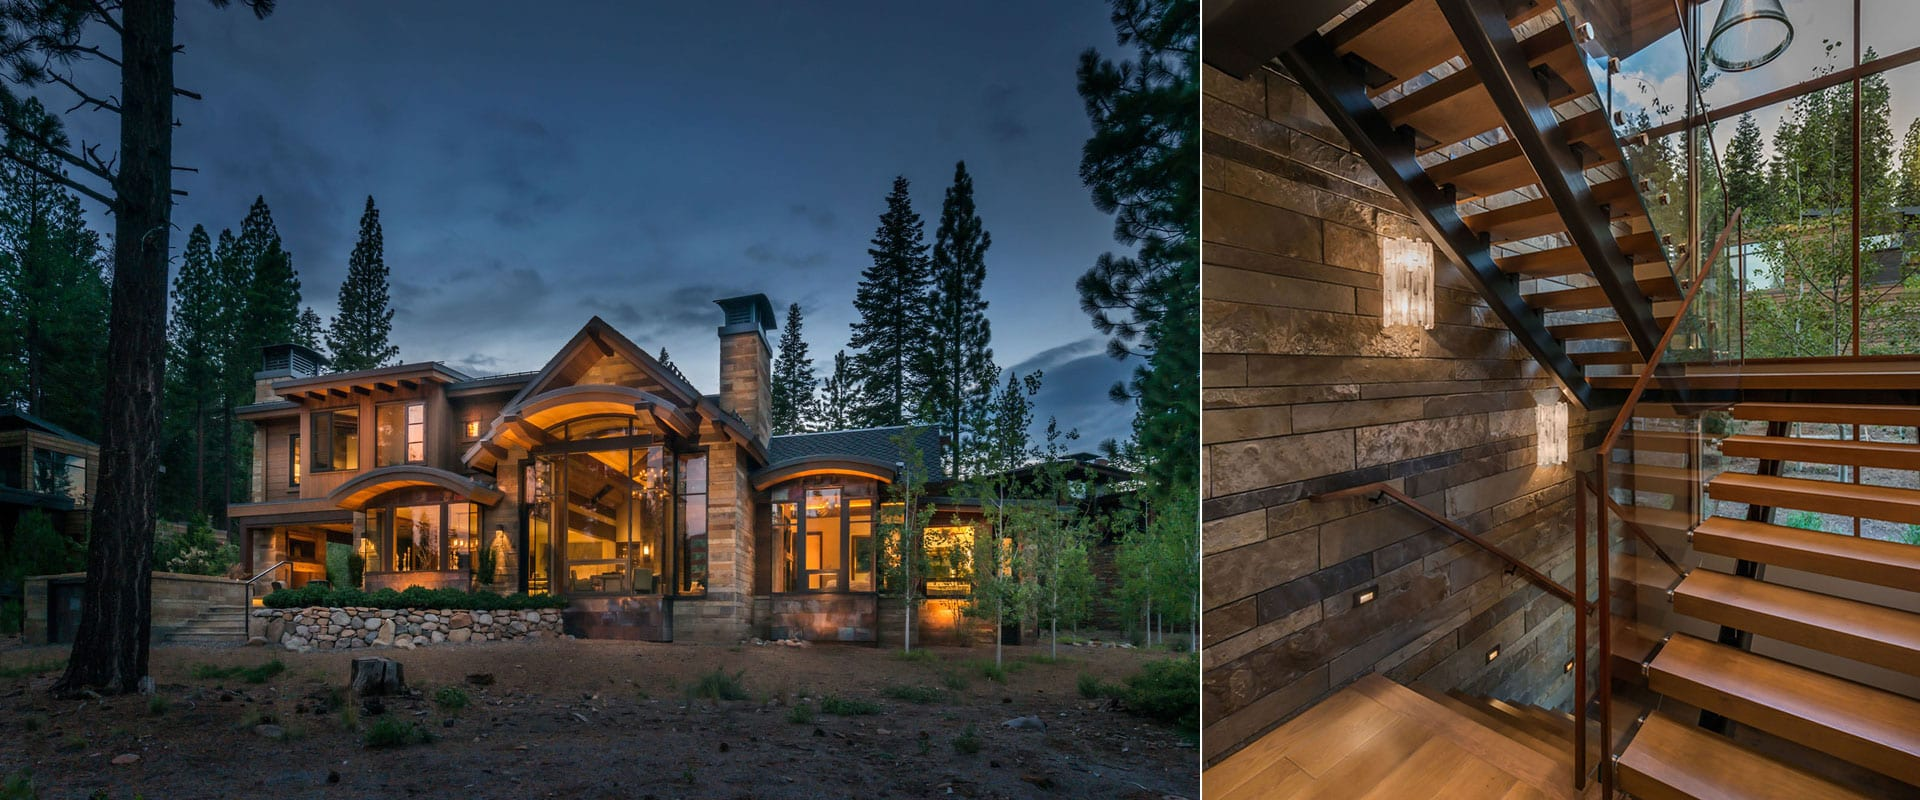 Exterior night view of modern mountain home with tall wood windows